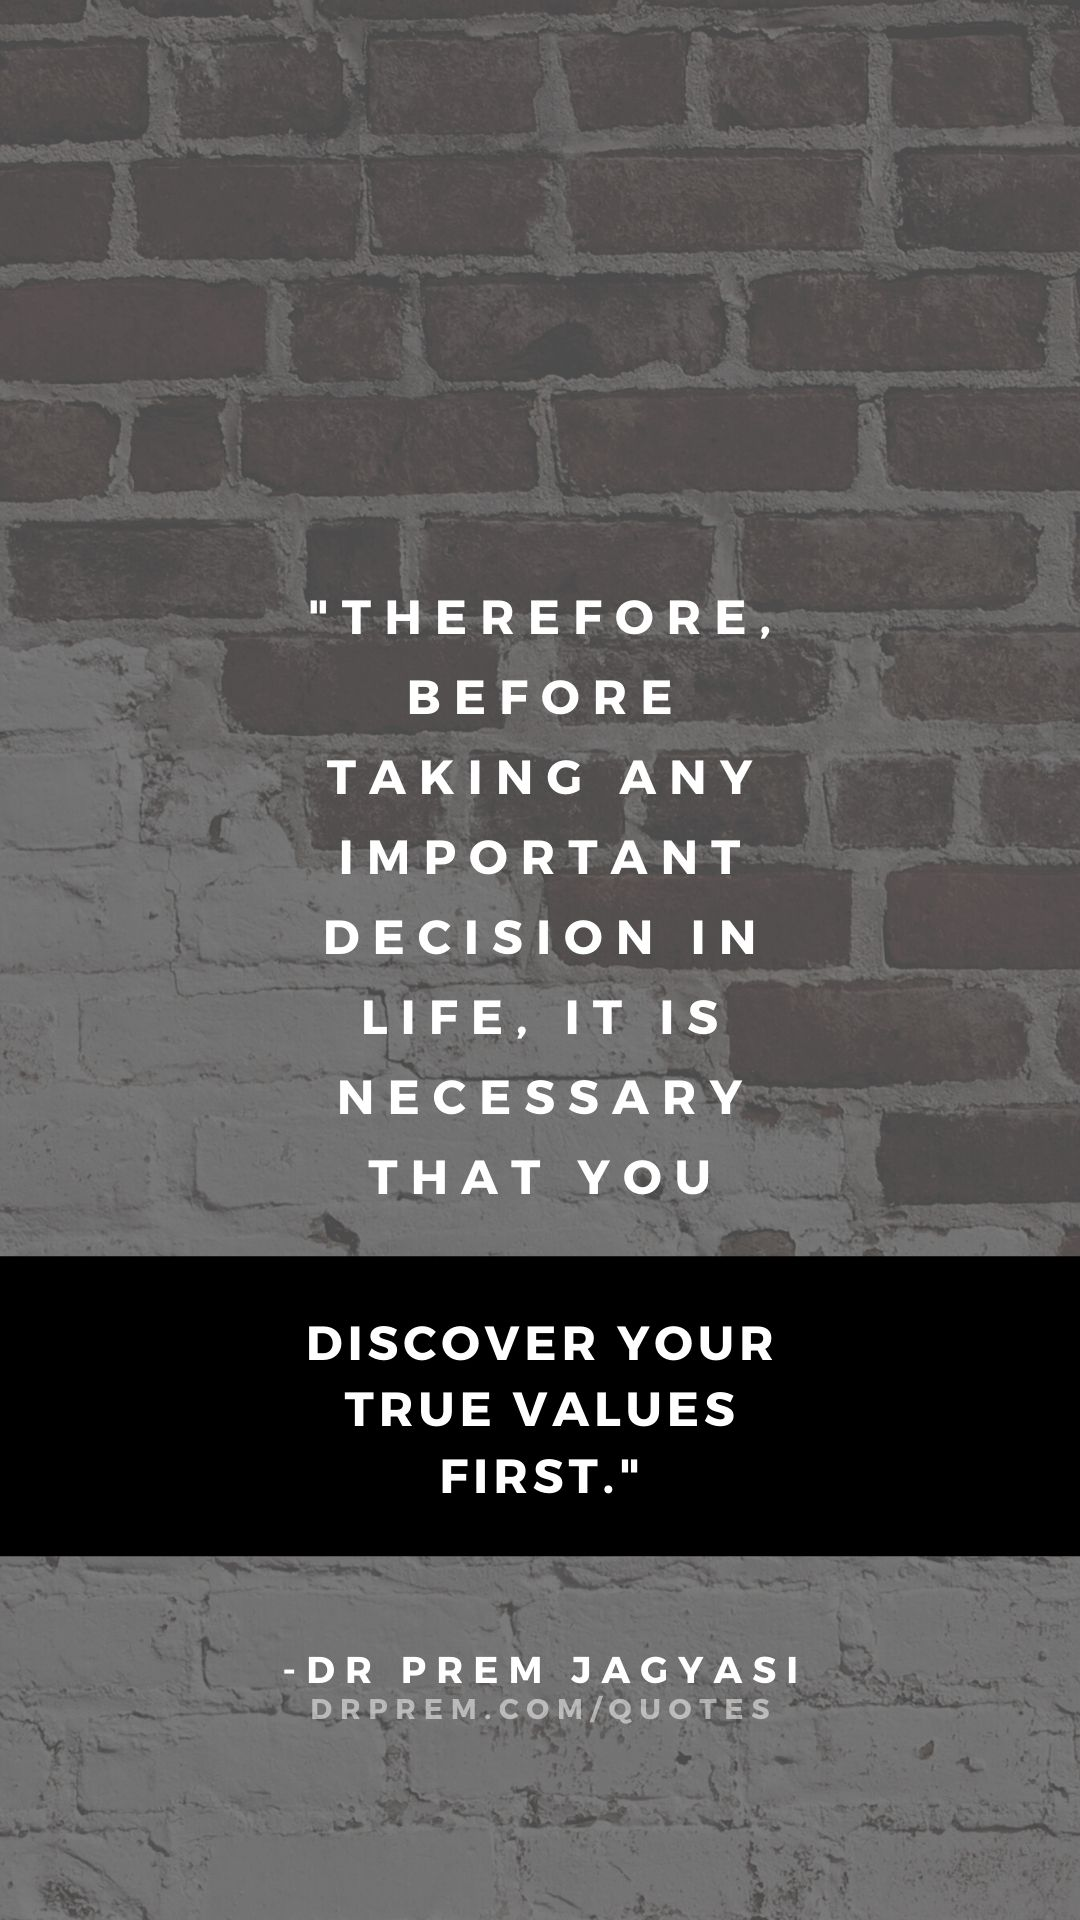 Therefore, before taking any important decision in life- Dr Prem Jagyasi Quote